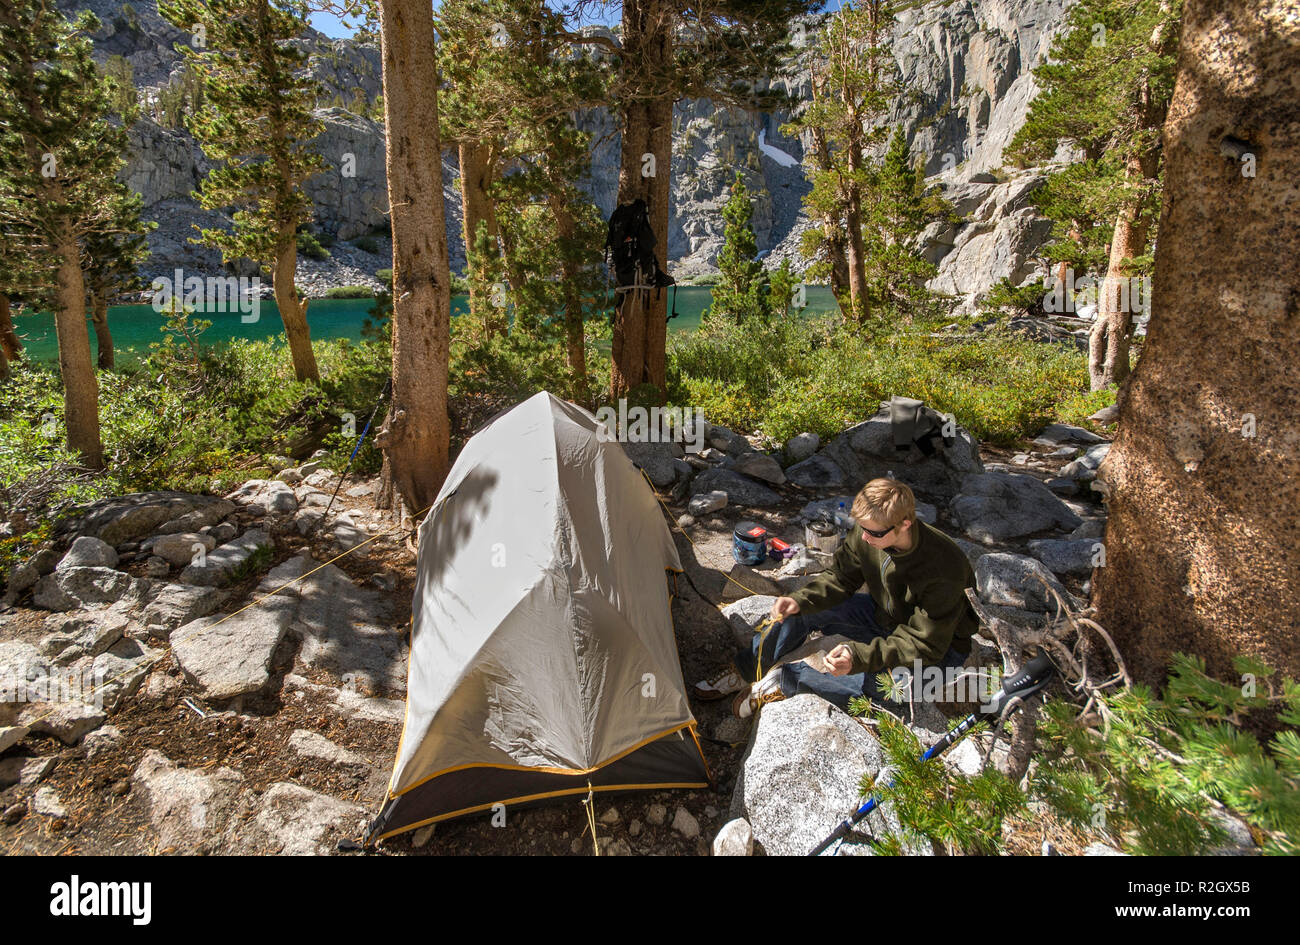 Young hiker at campsite at Brainard Lake, The Palisades region, John Muir Wilderness, Eastern Sierra Nevada, California, USA - Stock Image